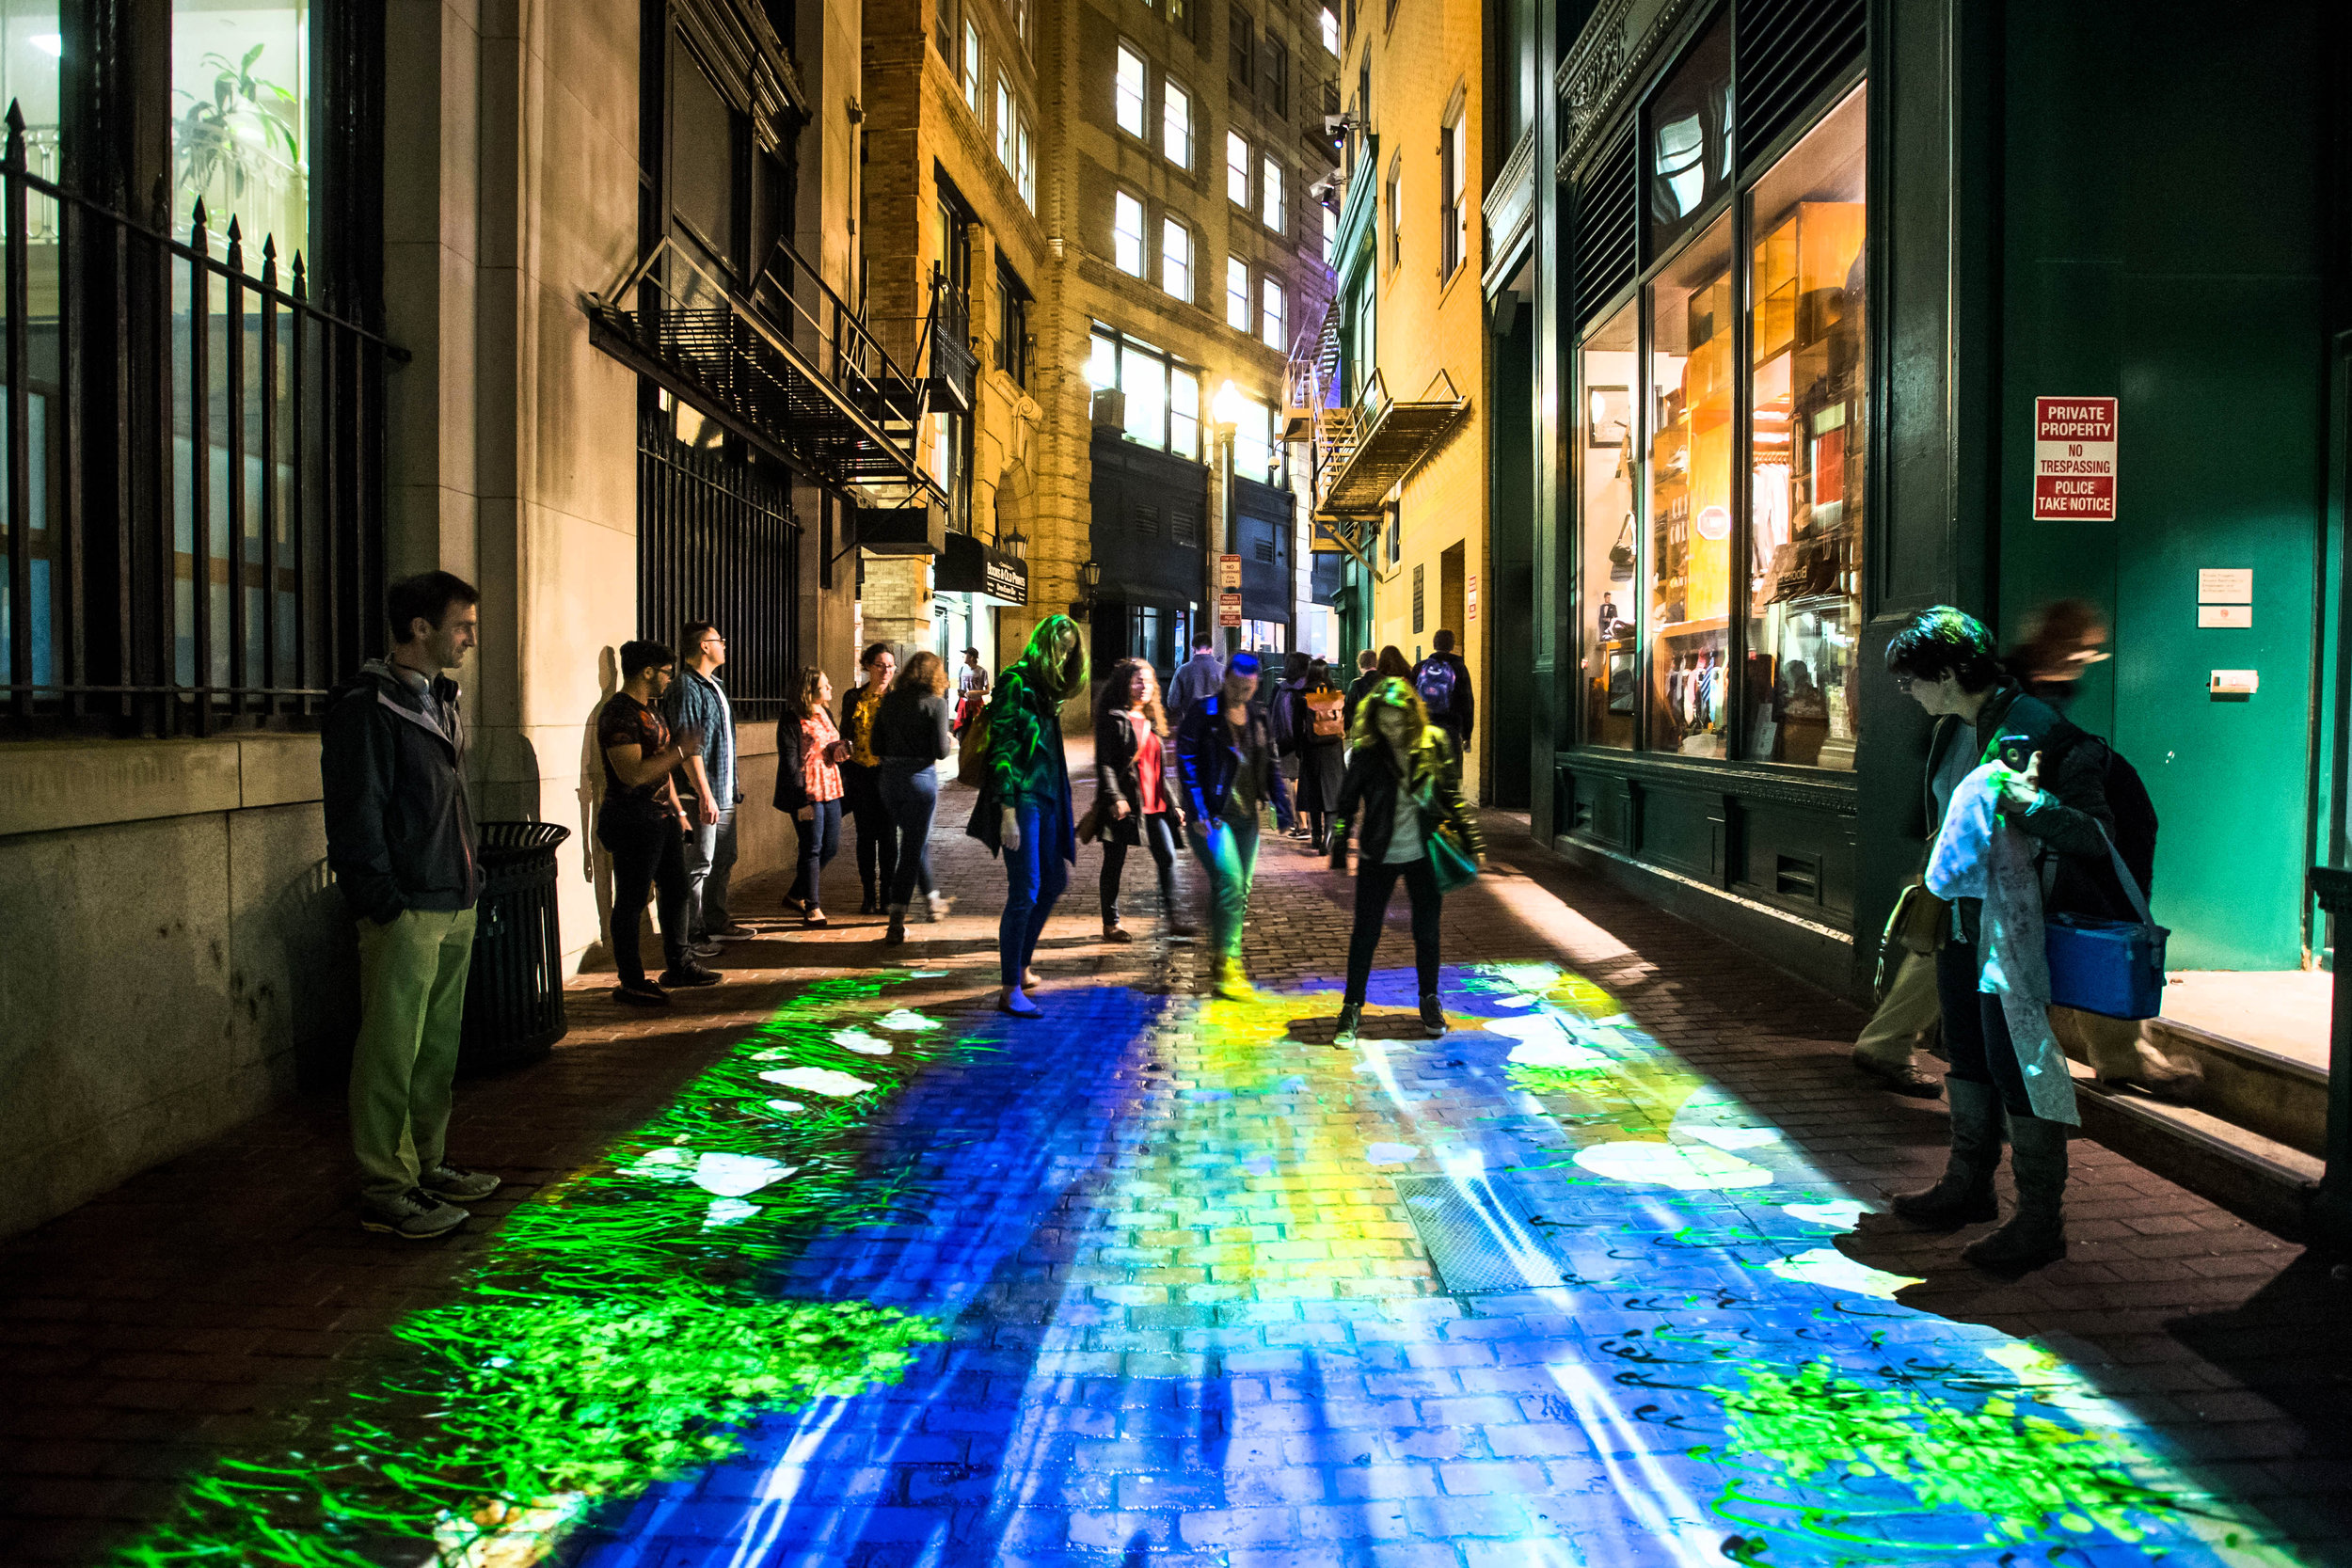 Wellspring Fords_Boston Bit-A-Magic_Illuminus 2017_Photo by Aram Boghosian_1.jpg